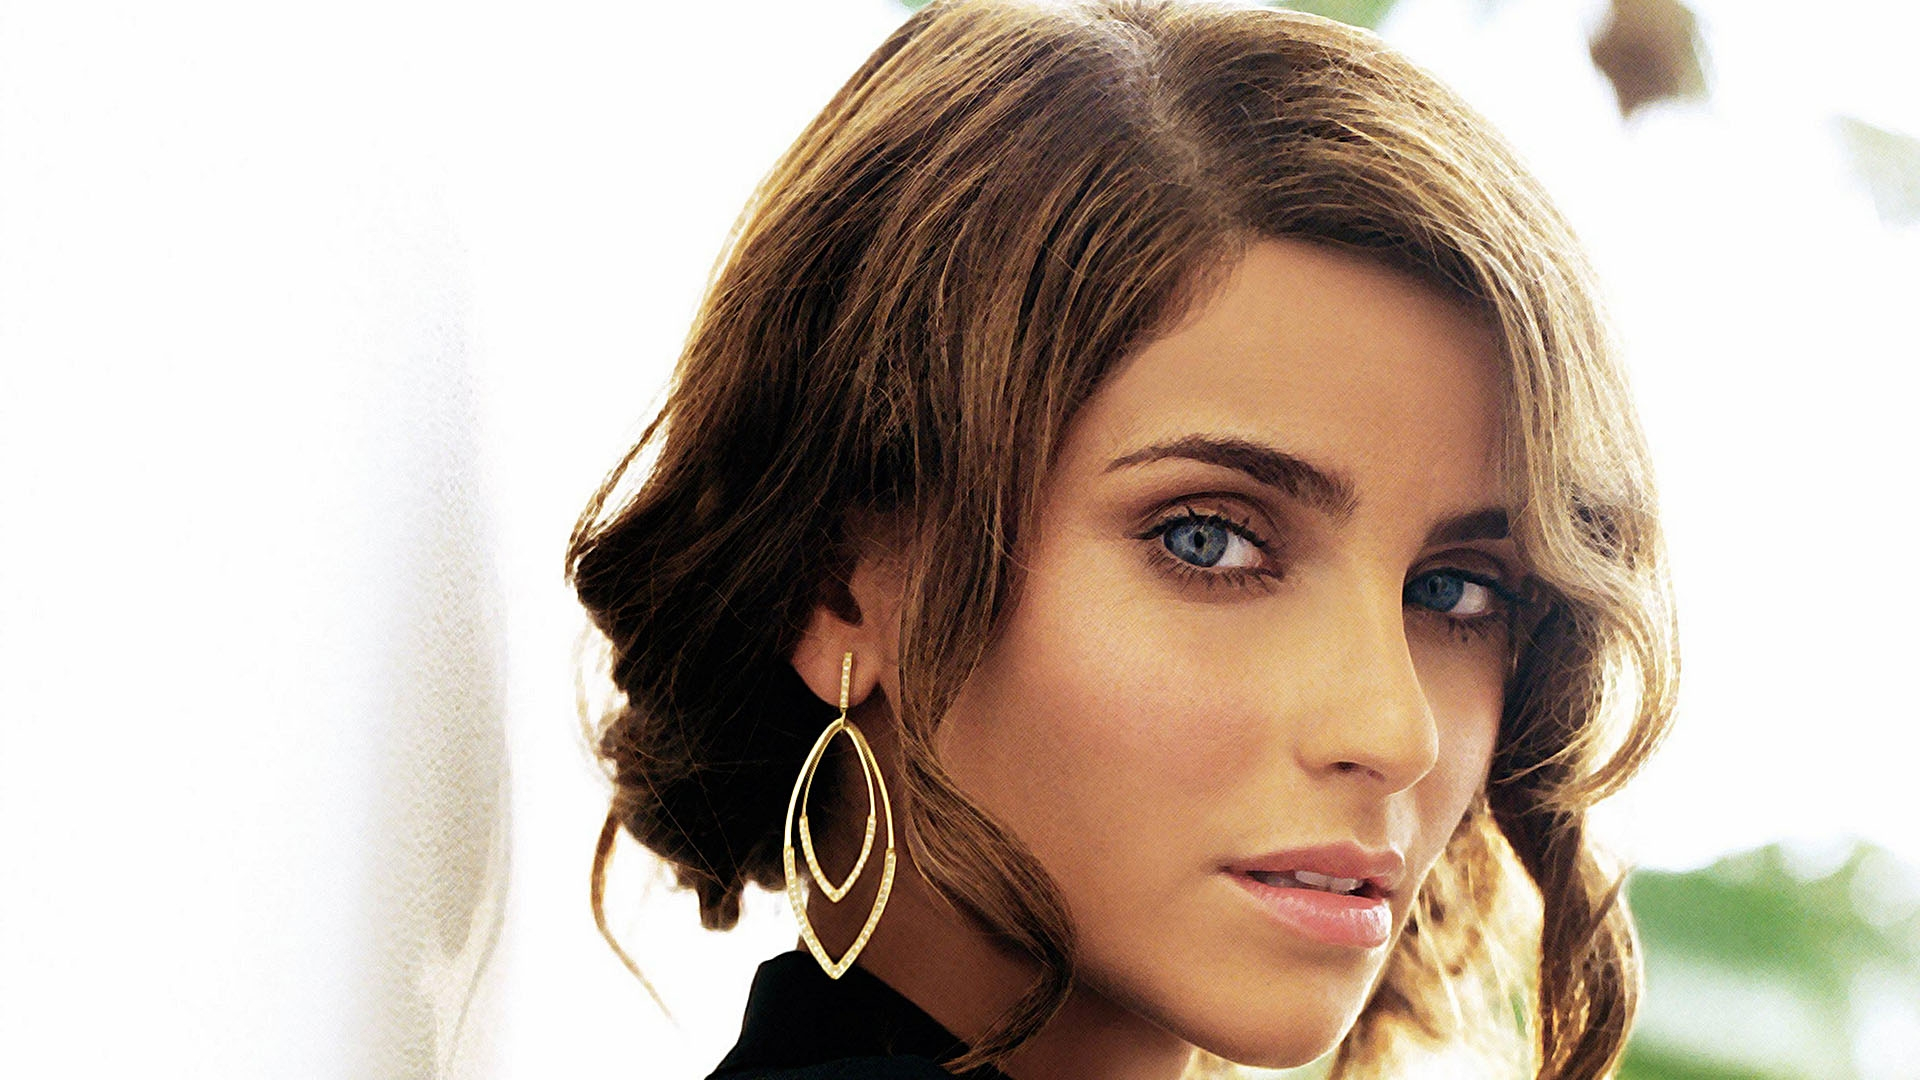 Download Wallpaper 1920x1080 Nelly Furtado Haircut